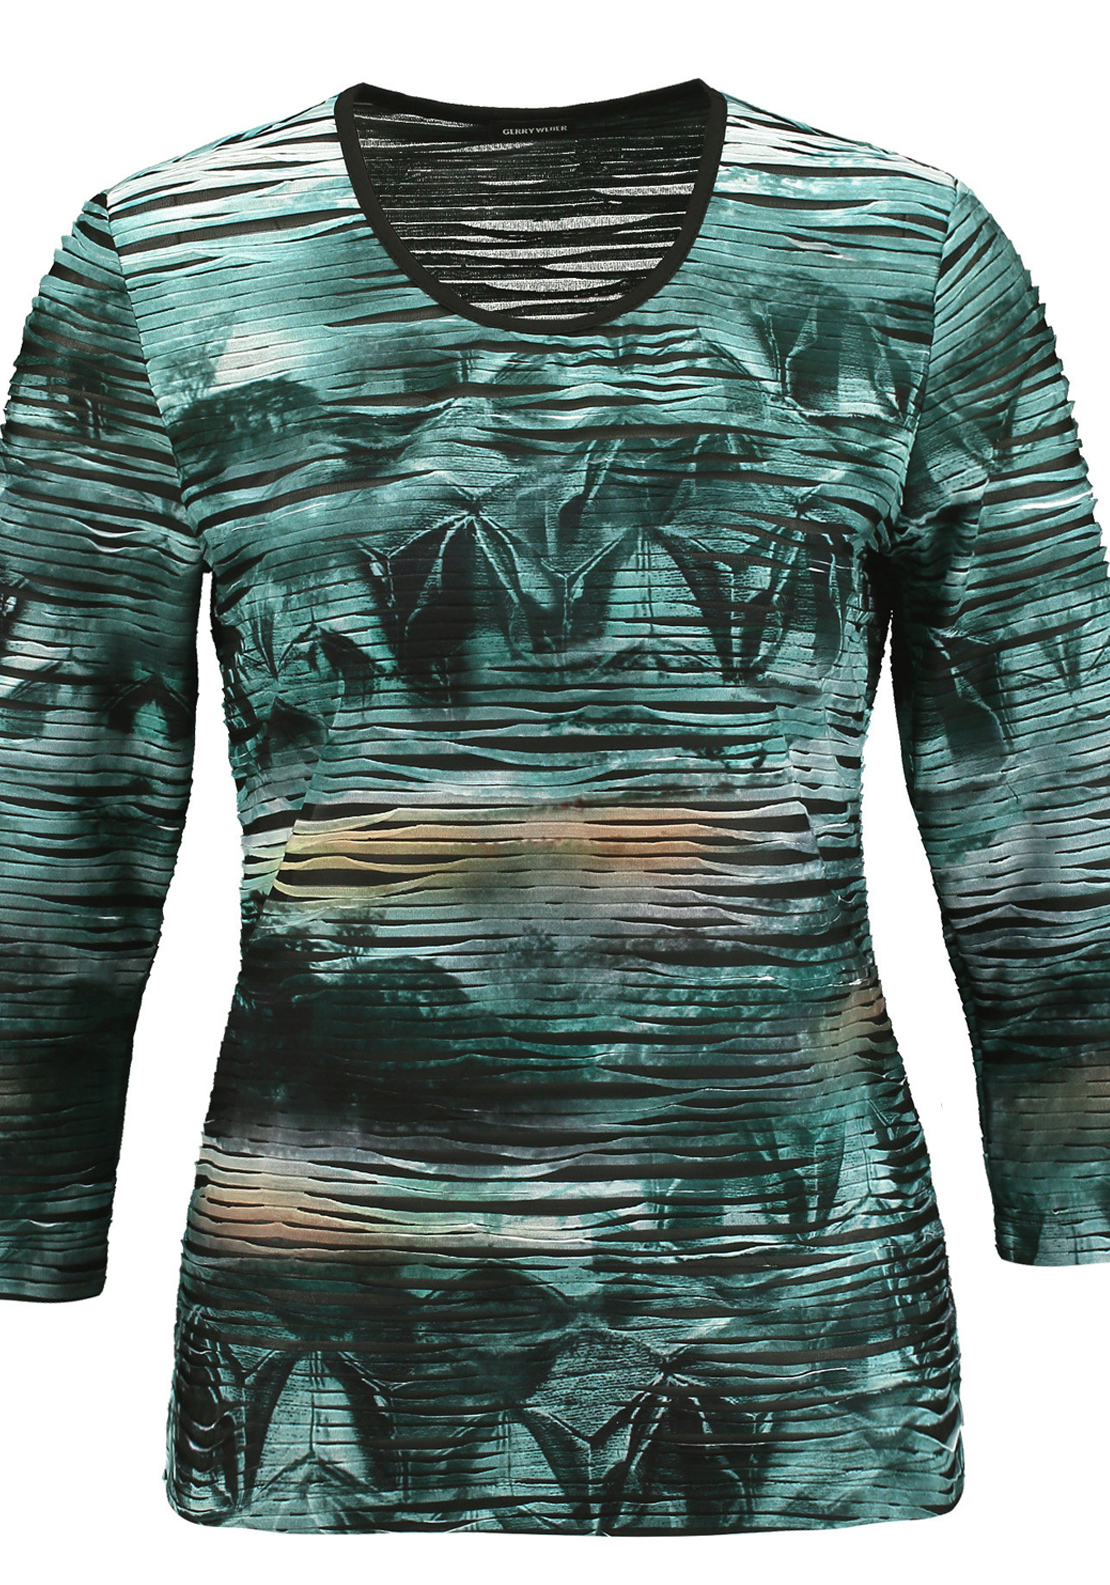 Gerry Weber Ribbed Printed Cropped Sleeve Top, Green Multi